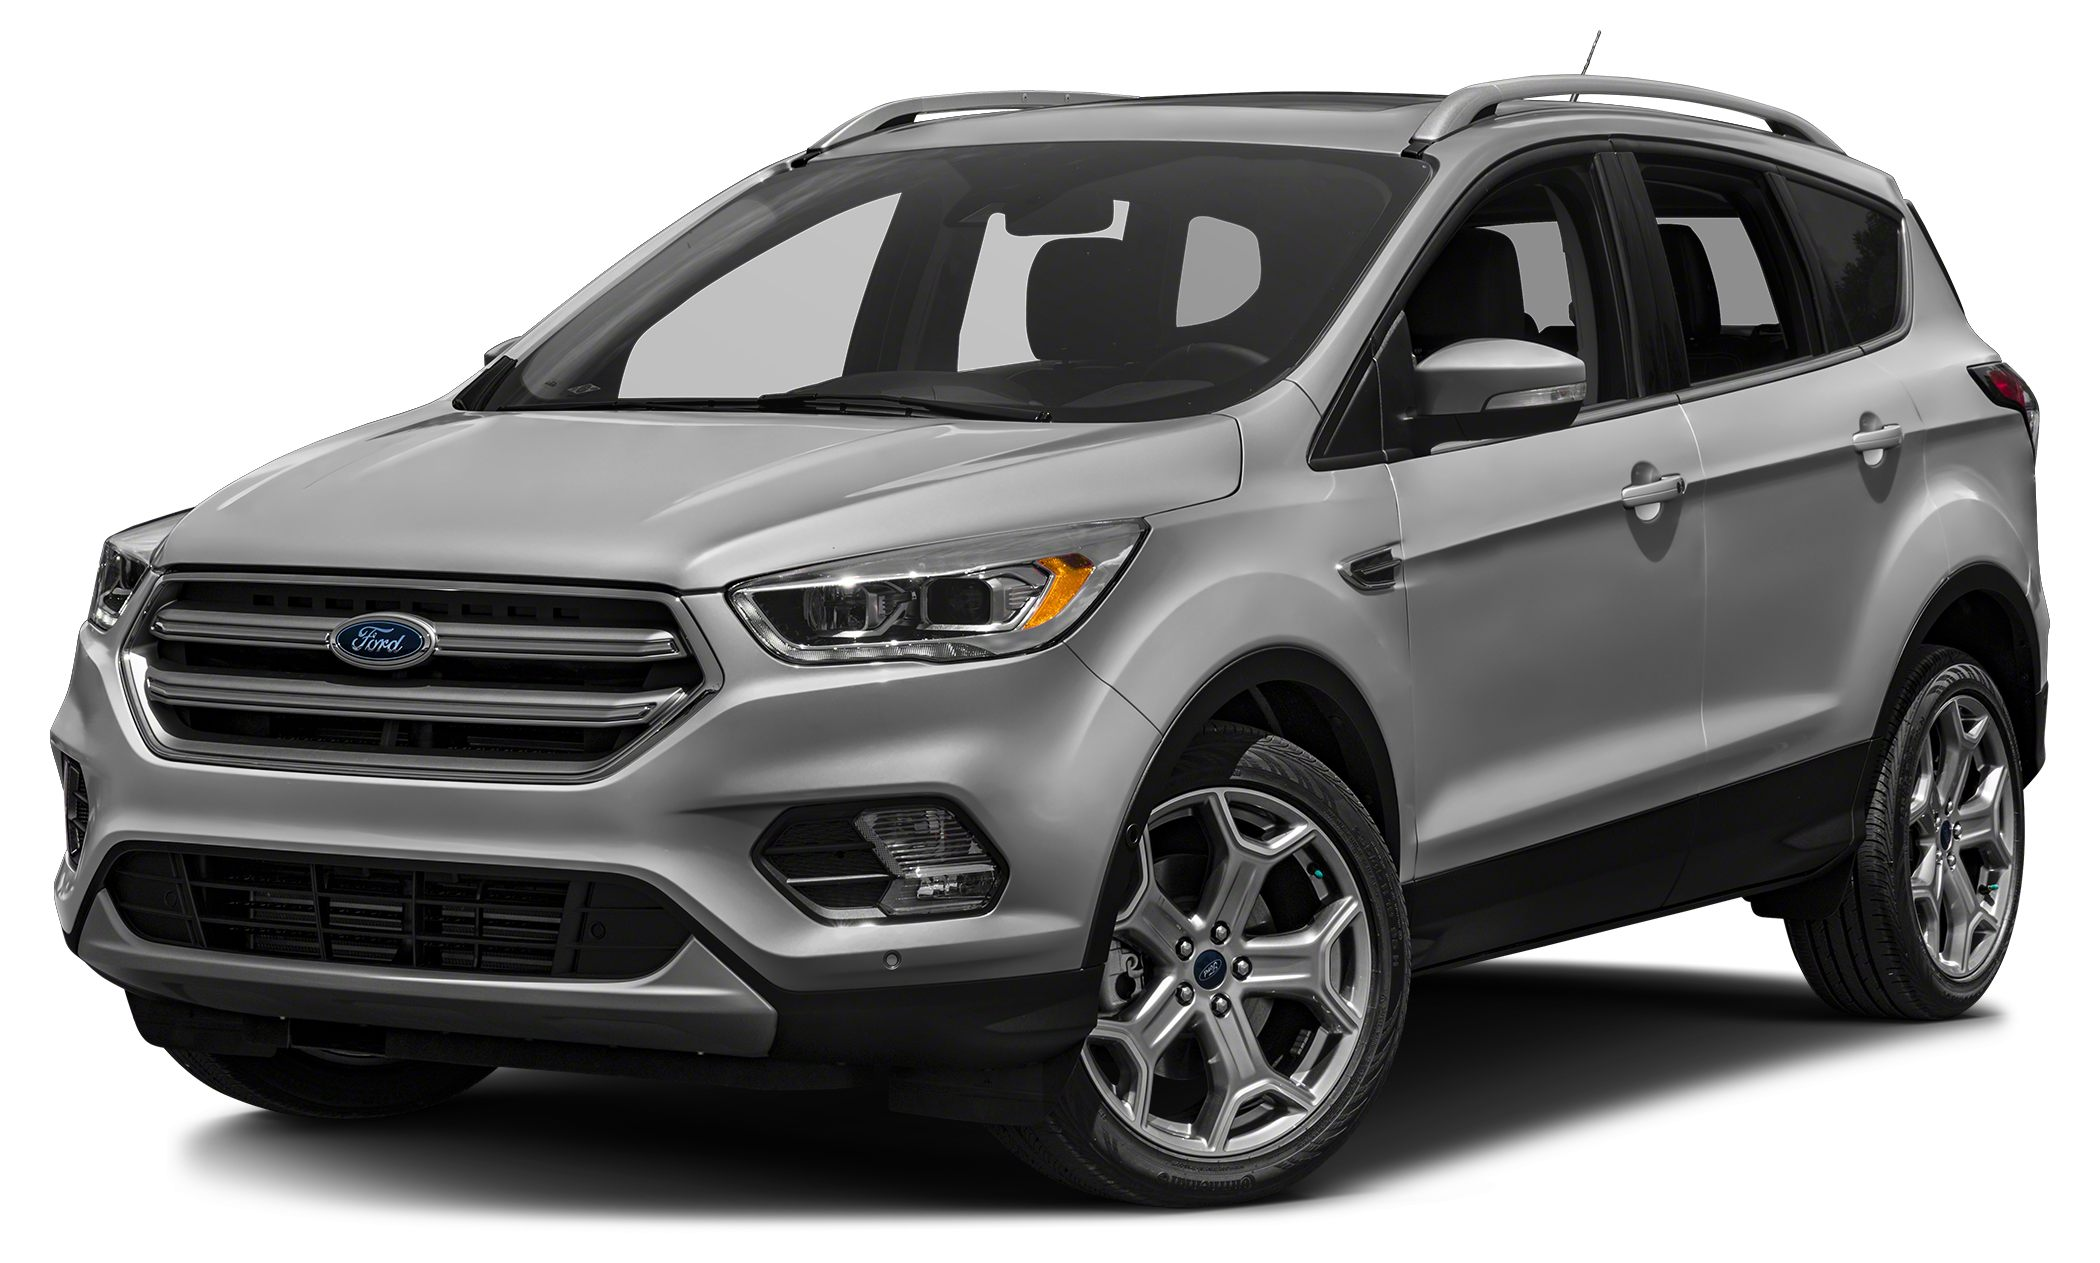 2017 Ford Escape Titanium Color Silver Stock 7162 VIN 1FMCU9JD5HUA07162